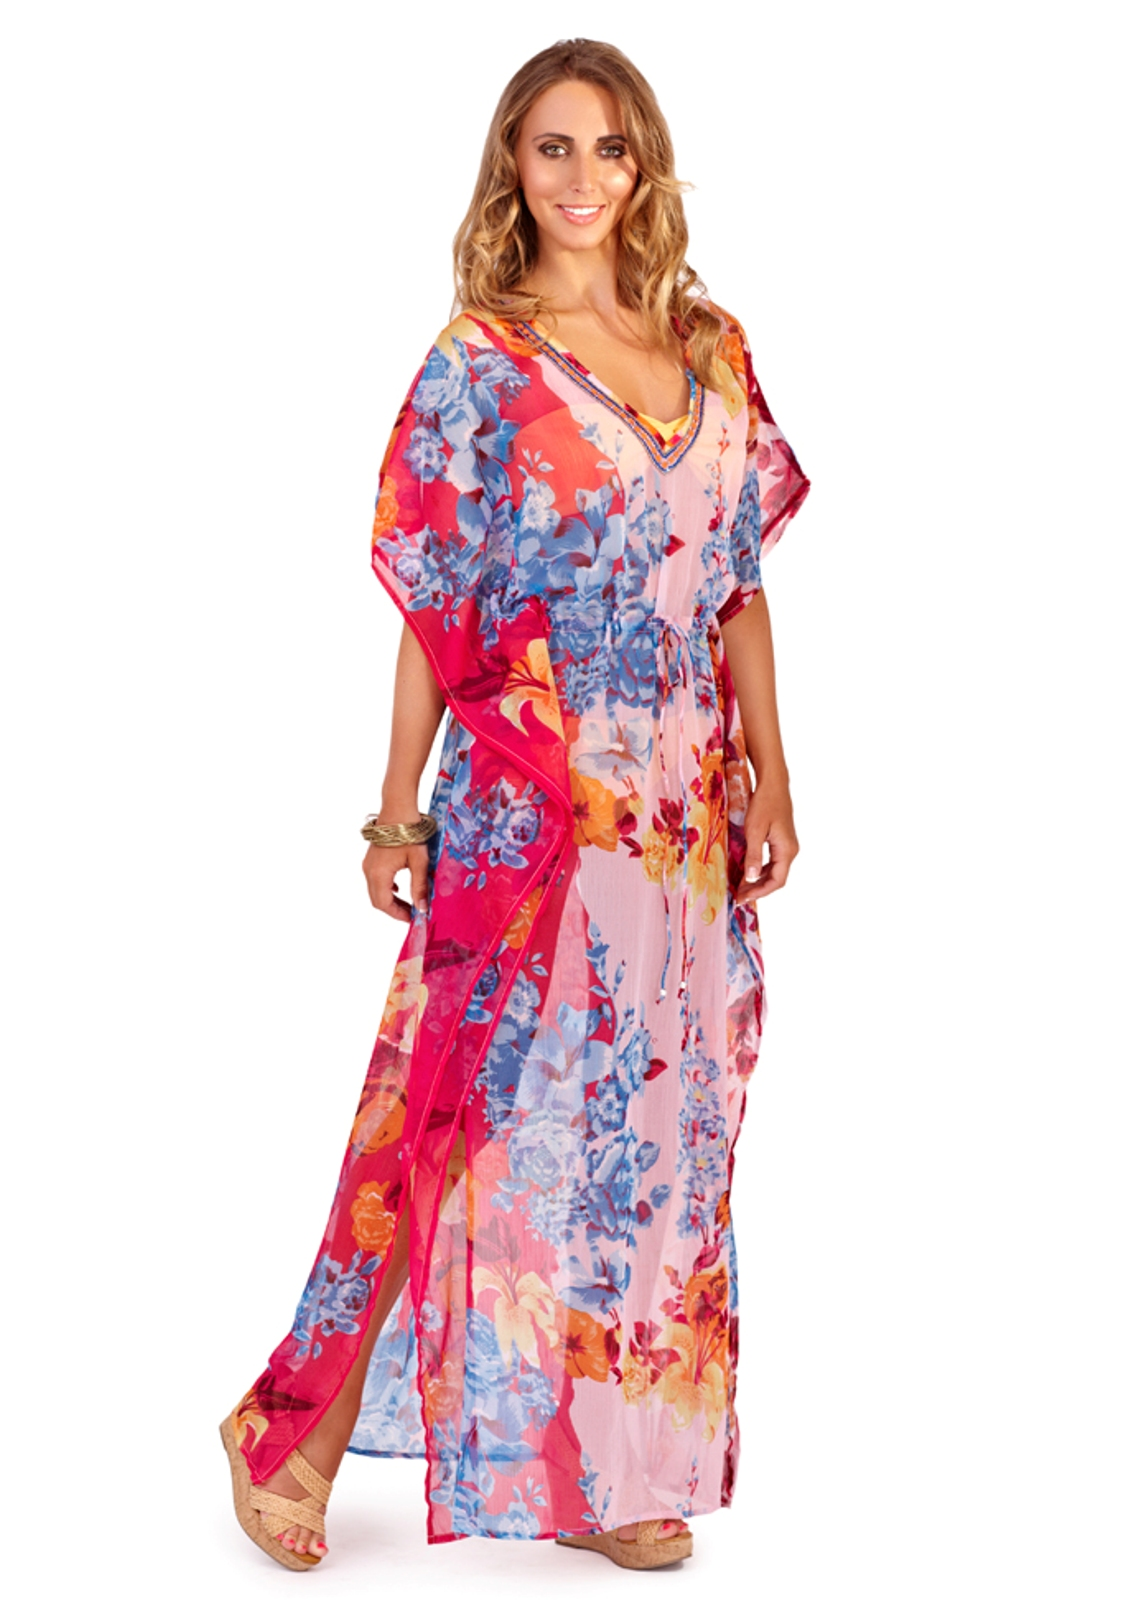 Beachcover's hand-embroidered Beach Kaftans / Cover Ups are the ultimate light weight accessory to add to your holiday capsule wardrobe! Wear around the pool or beach or simply slip one on over a pair of trousers/jeans or leggings for a 'boho' chic look!